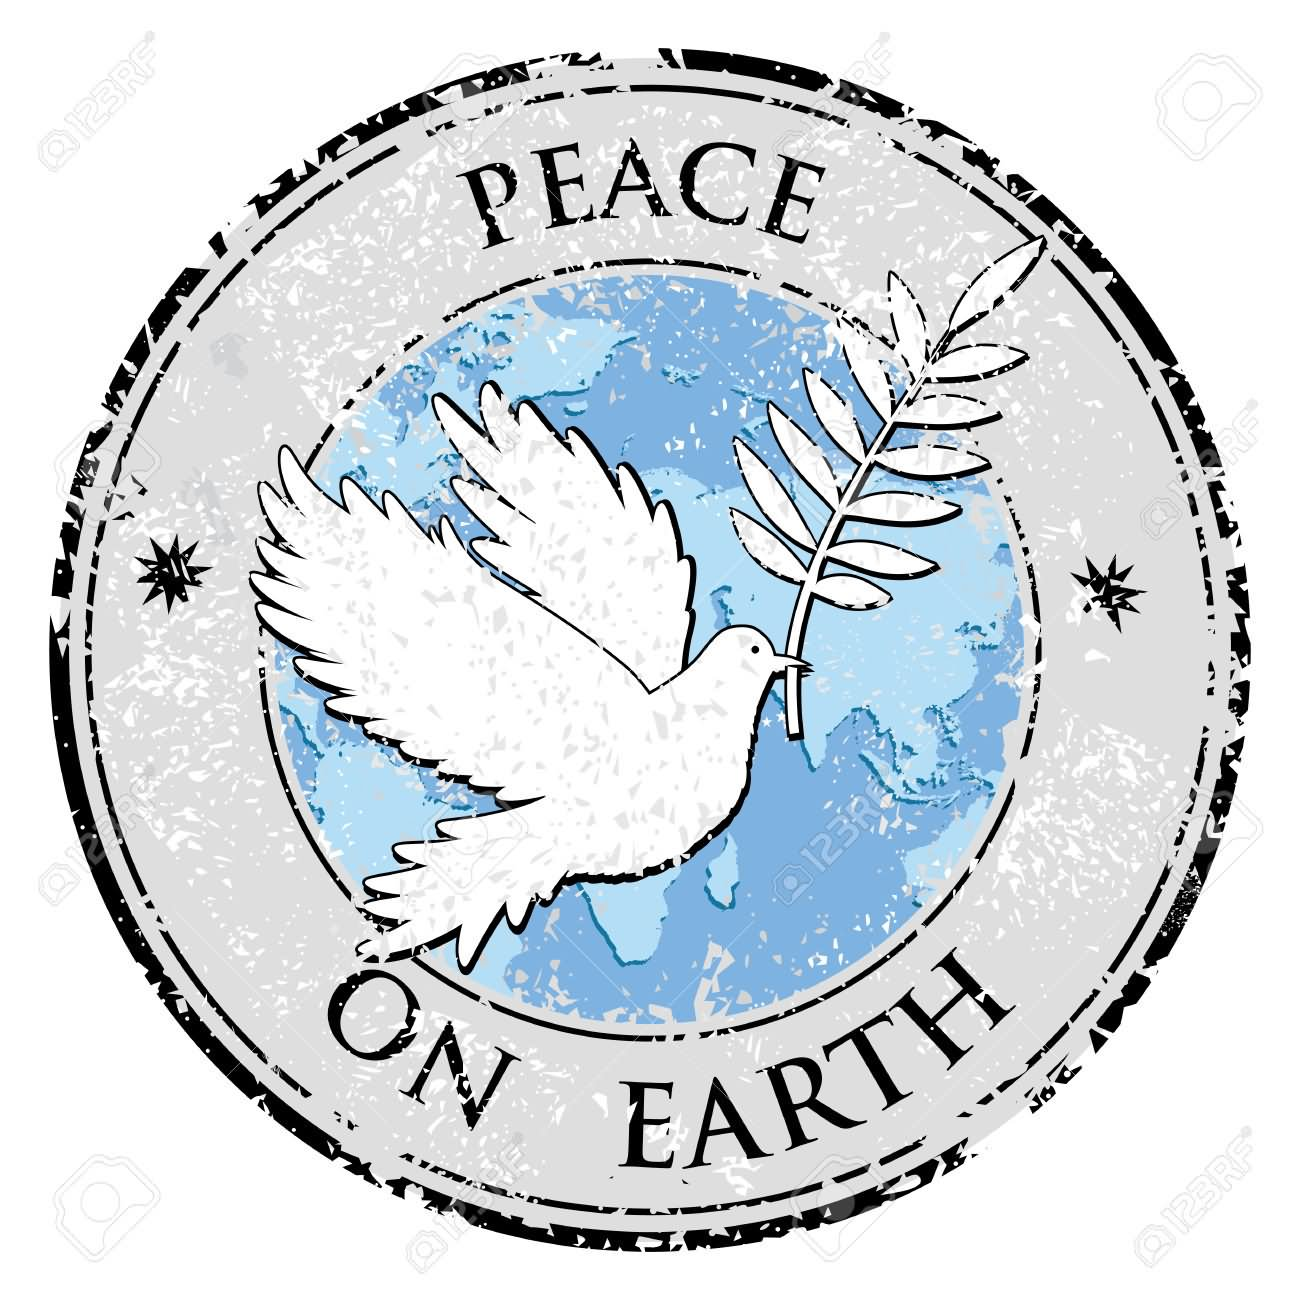 50 international day of peace wish pictures and images peace on earth happy international day of peace biocorpaavc